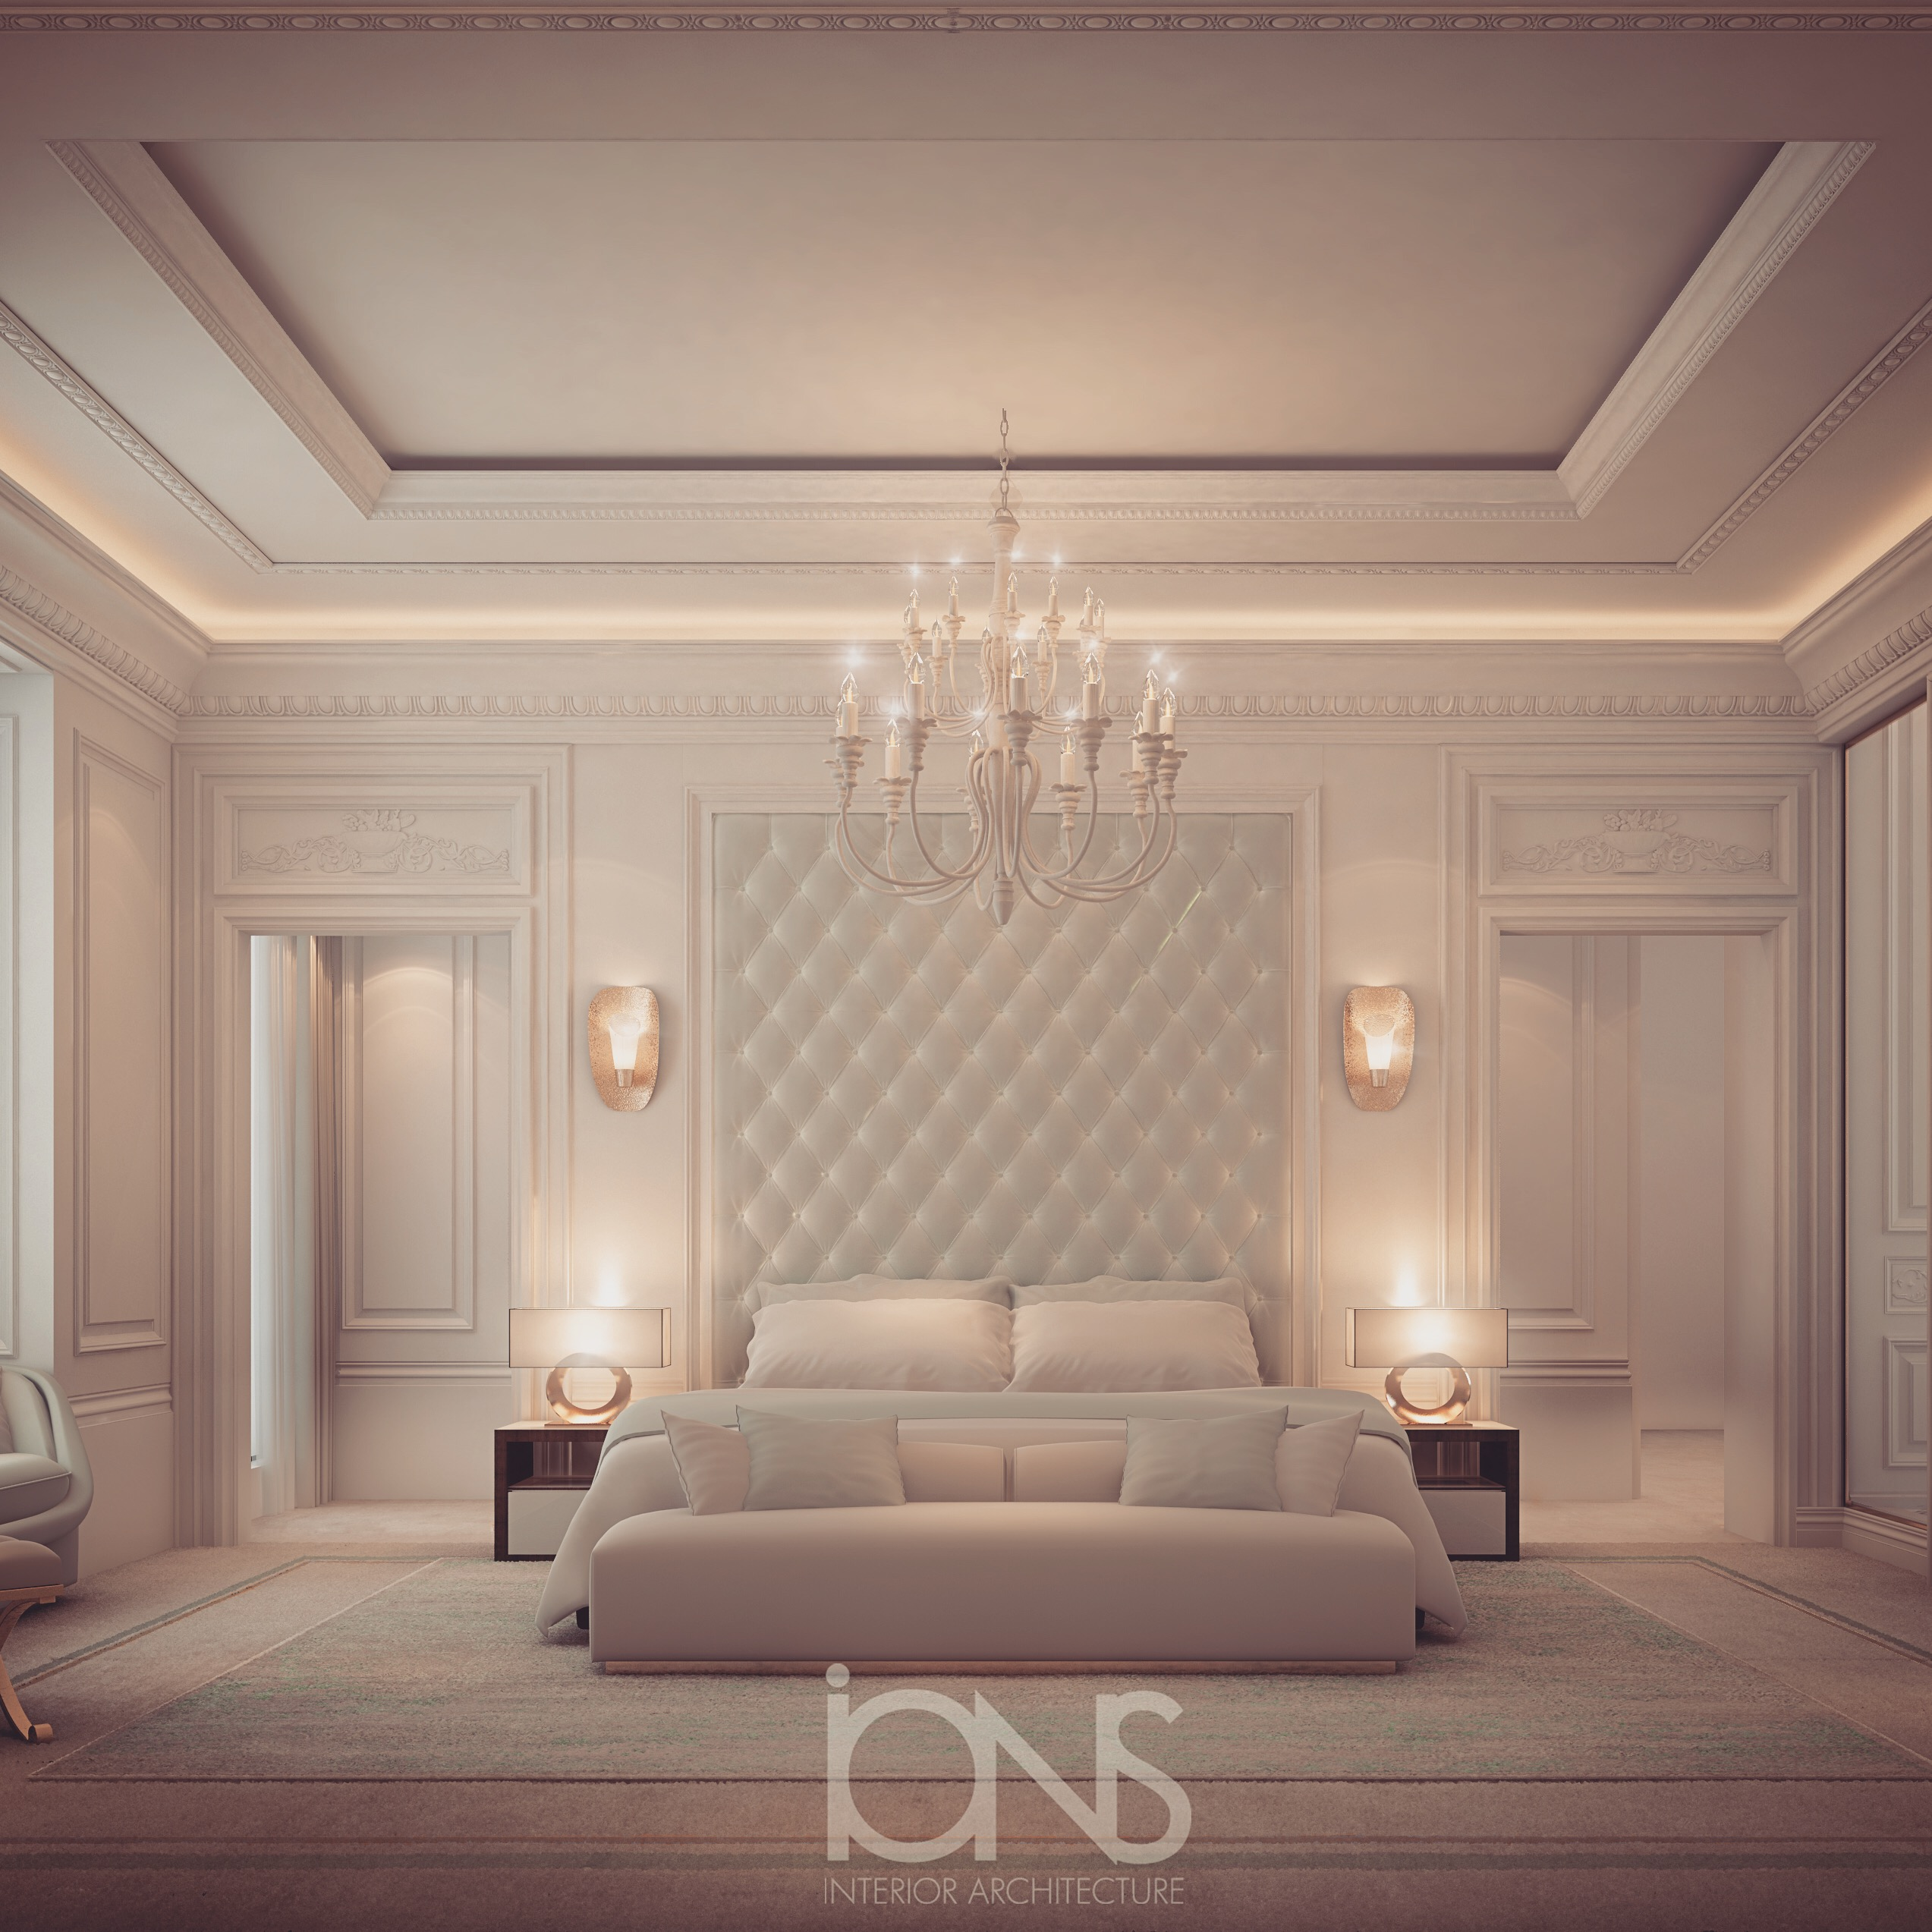 Ions Interior Design Dubai bedroom design in dramatic contrast | ions design | archello